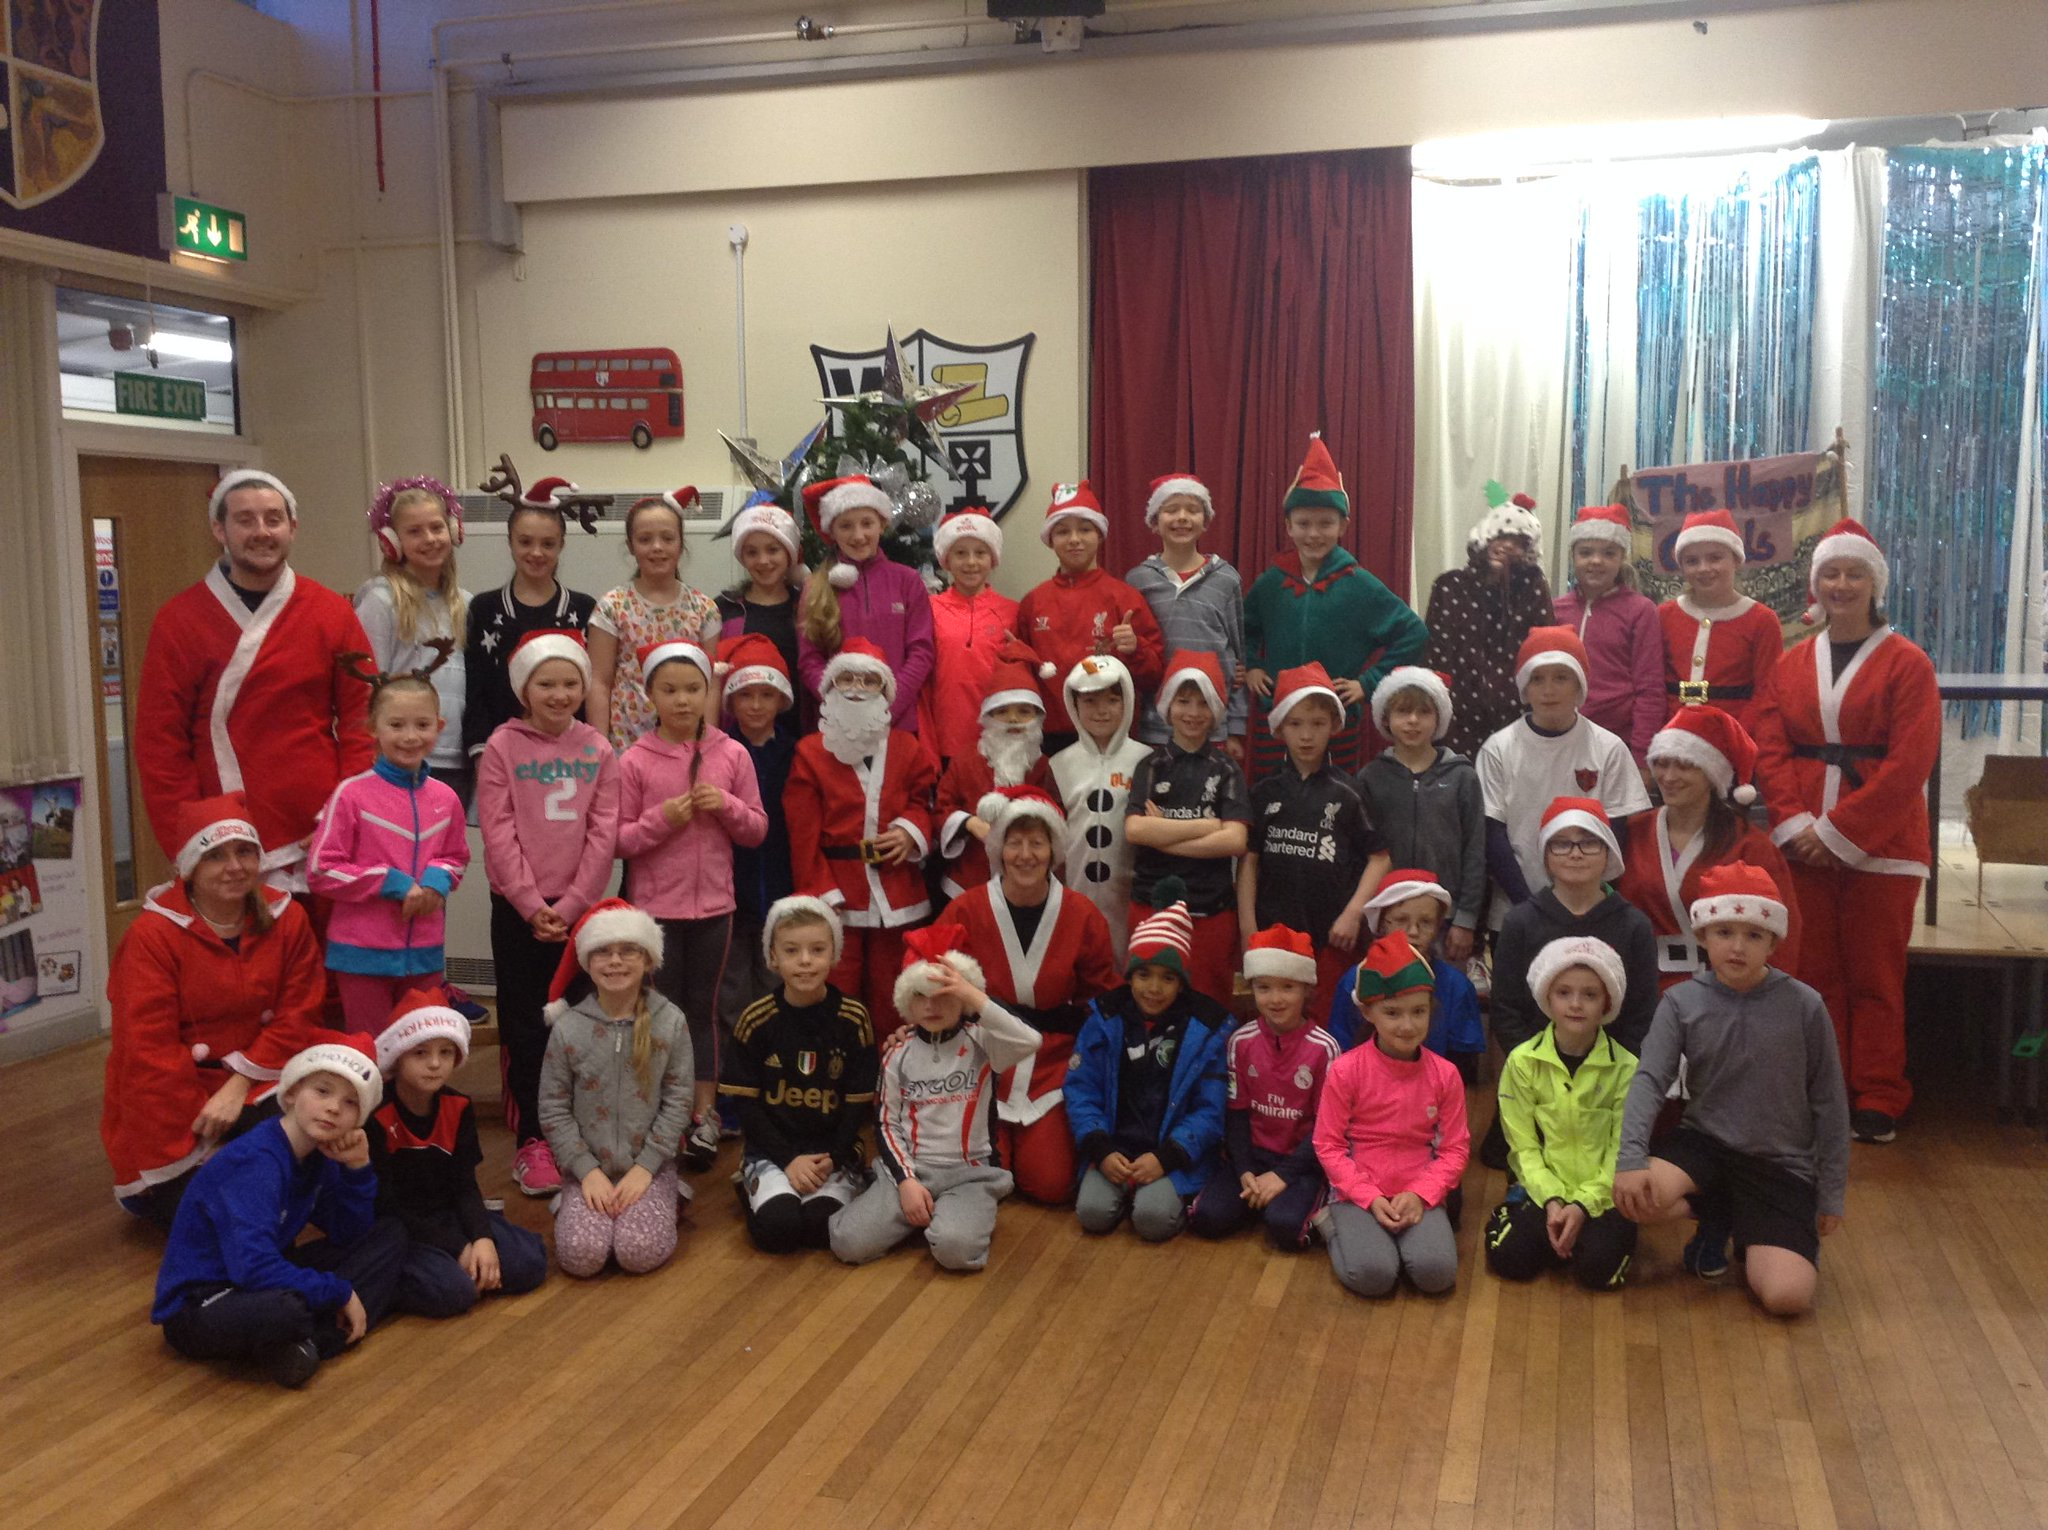 woolton primary on twitter   u0026quot it u0026 39 s santa dash time with the